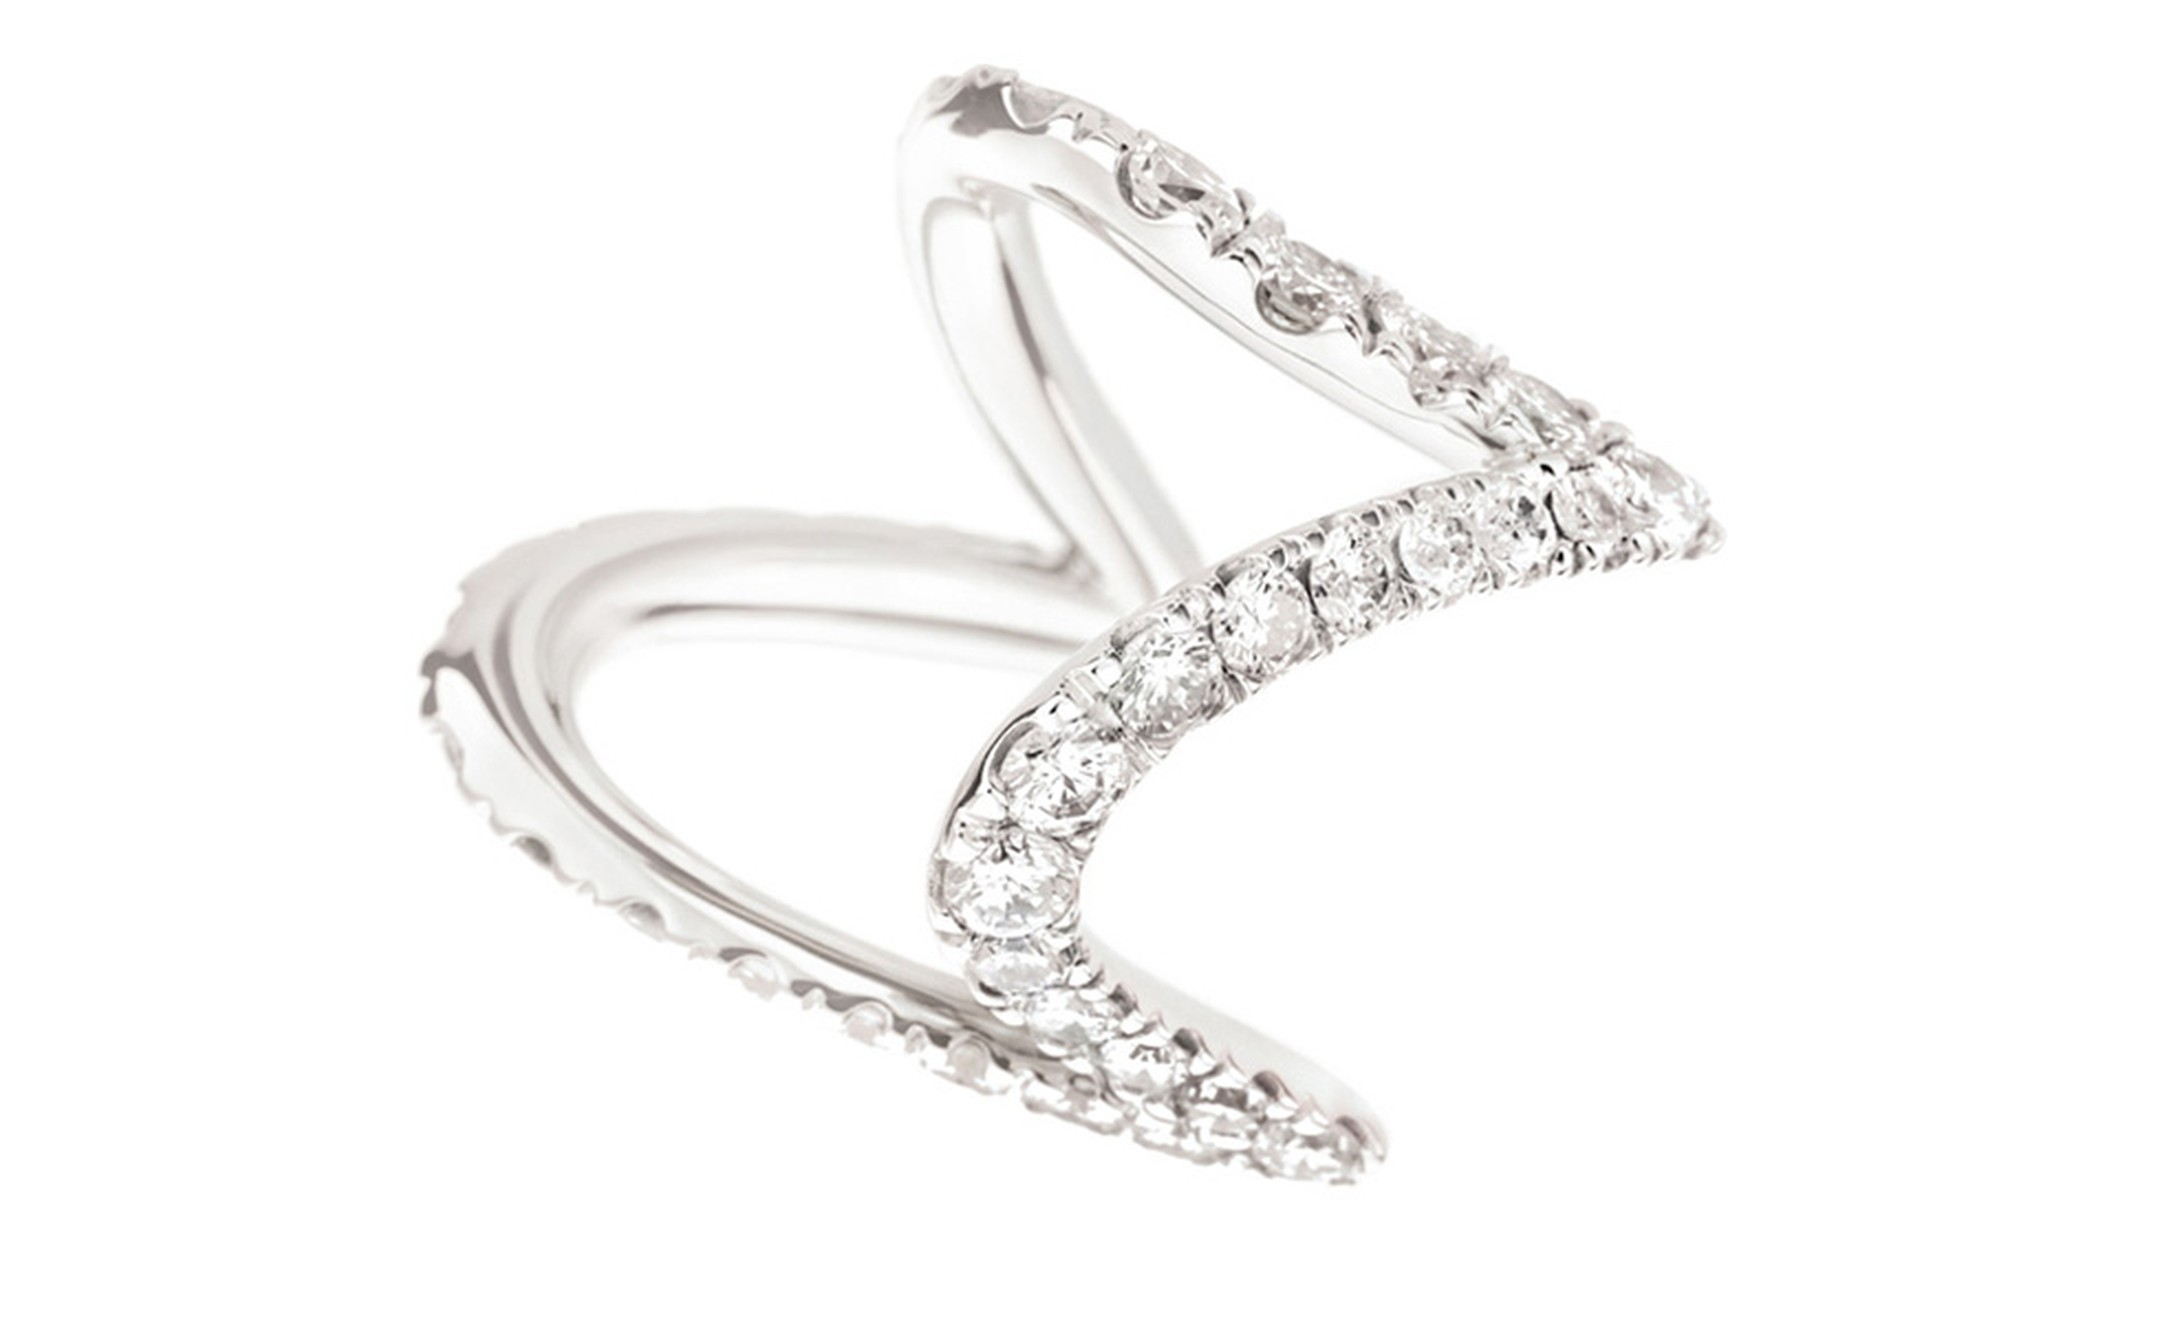 H STERN, PAMPULHA Ring in white gold and diamonds.